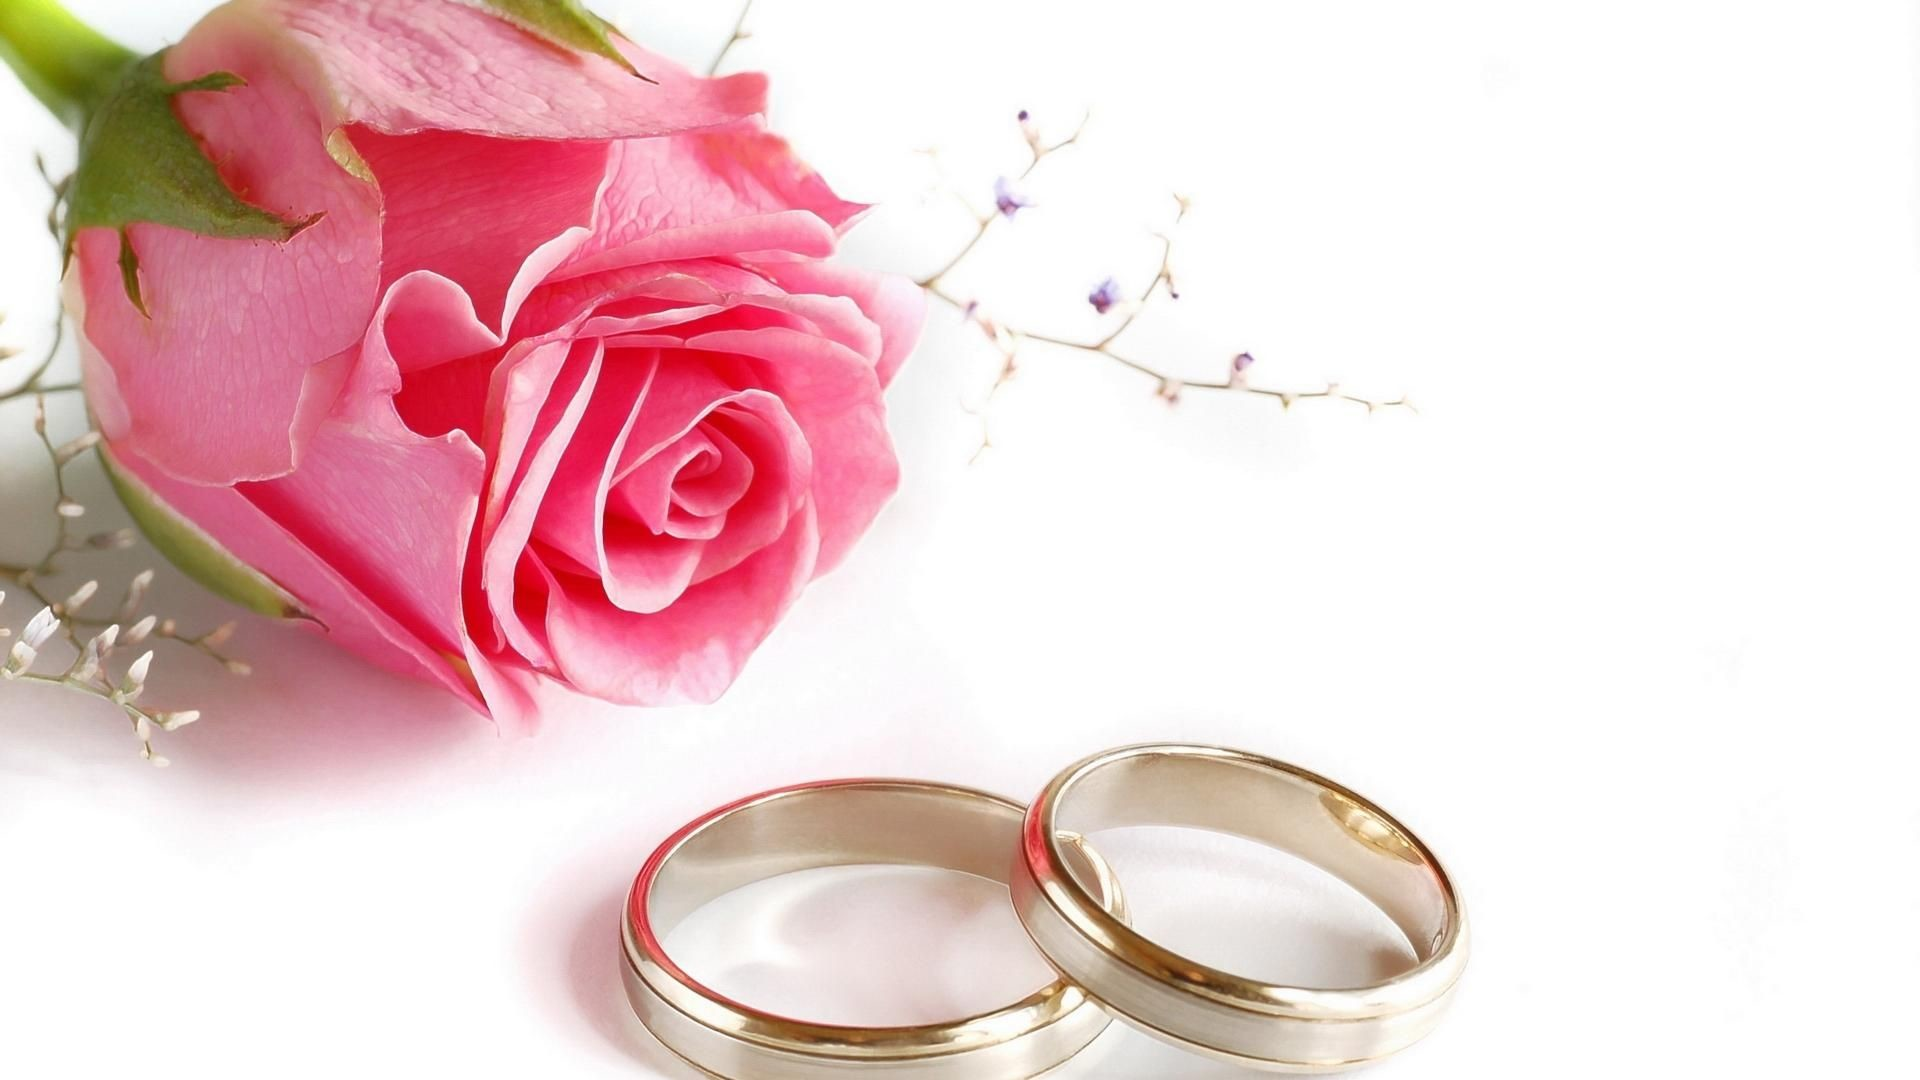 Res: 1920x1080, Wedding Rings Rose Flower HD Wallpaper